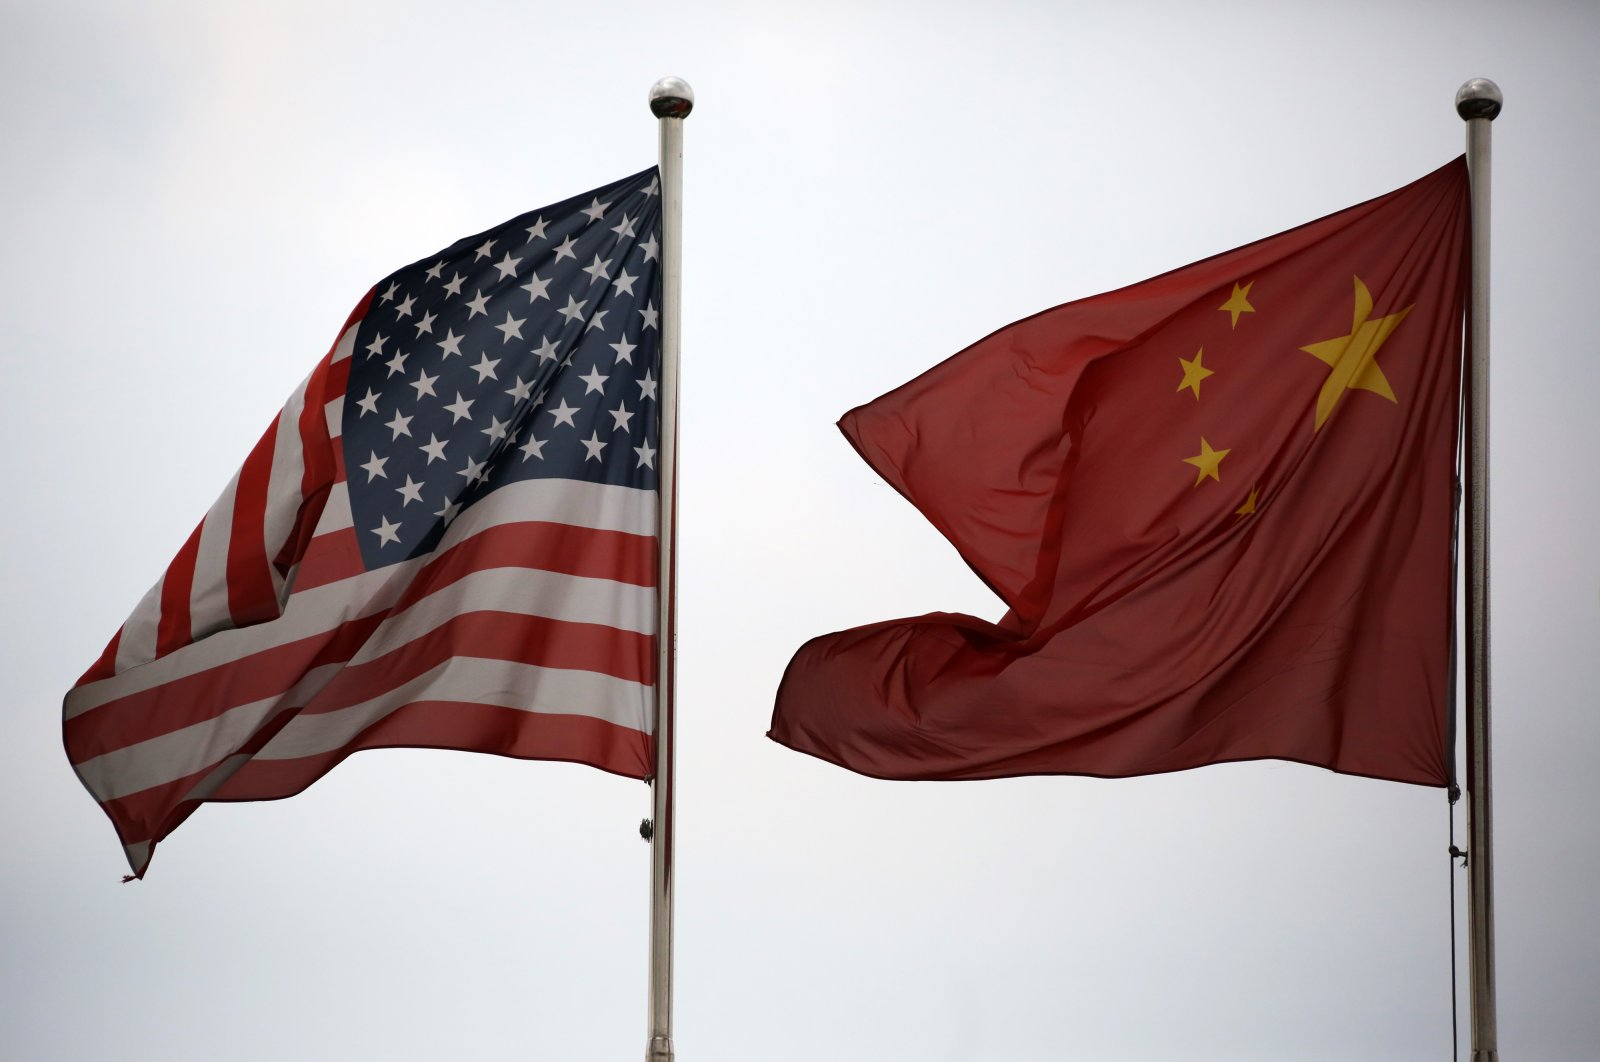 U.S. and Chinese national flags fly outside a company building in the China Pilot Free Trade Zone's Waigaoqiao free trade zone and logistics park in Shanghai, China, Oct. 22, 2013. (Bloomberg via Getty Images)